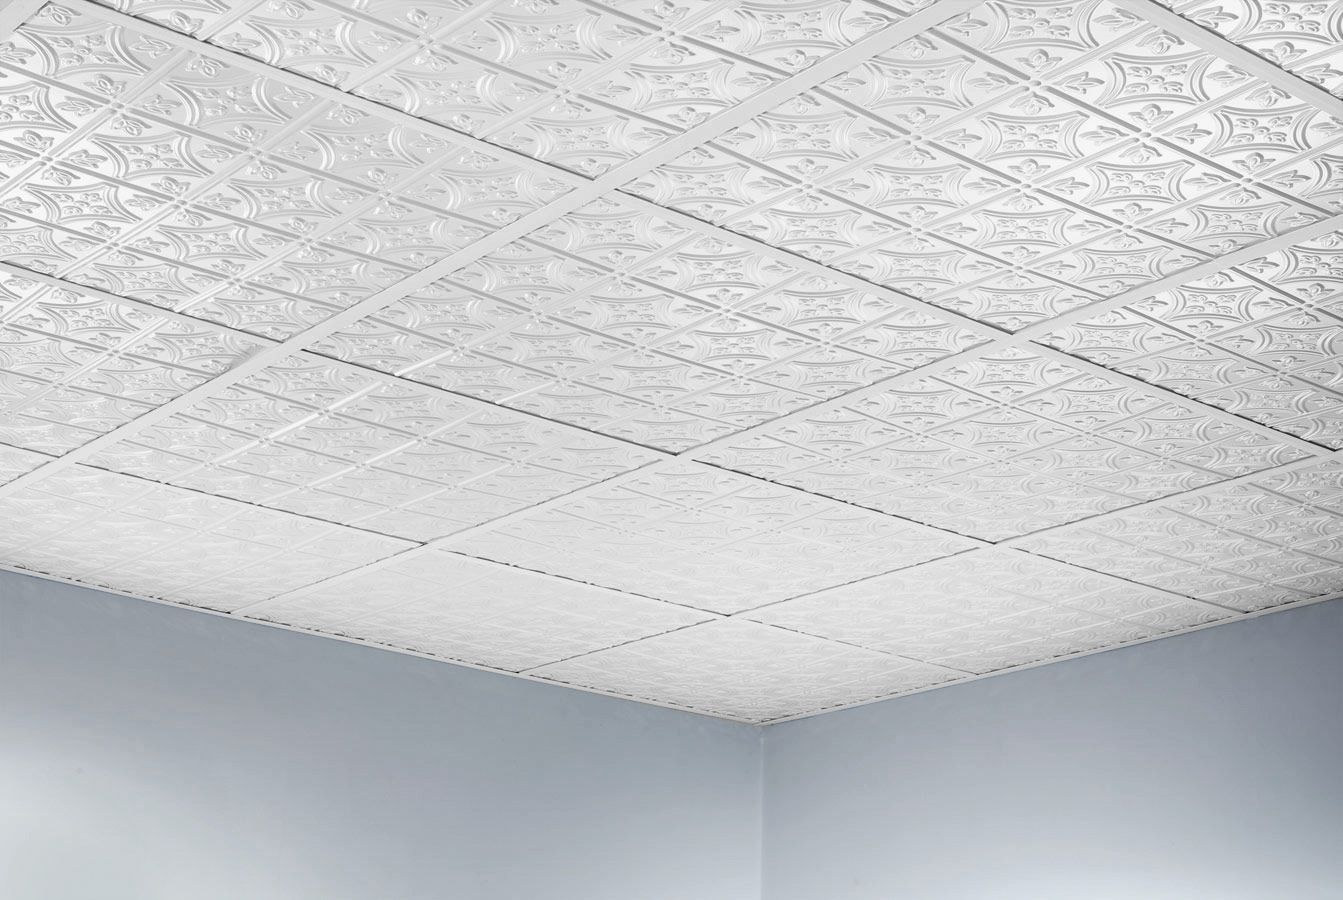 Restaurant washable ceiling tiles httpcreativechairsandtables restaurant washable ceiling tiles dailygadgetfo Image collections